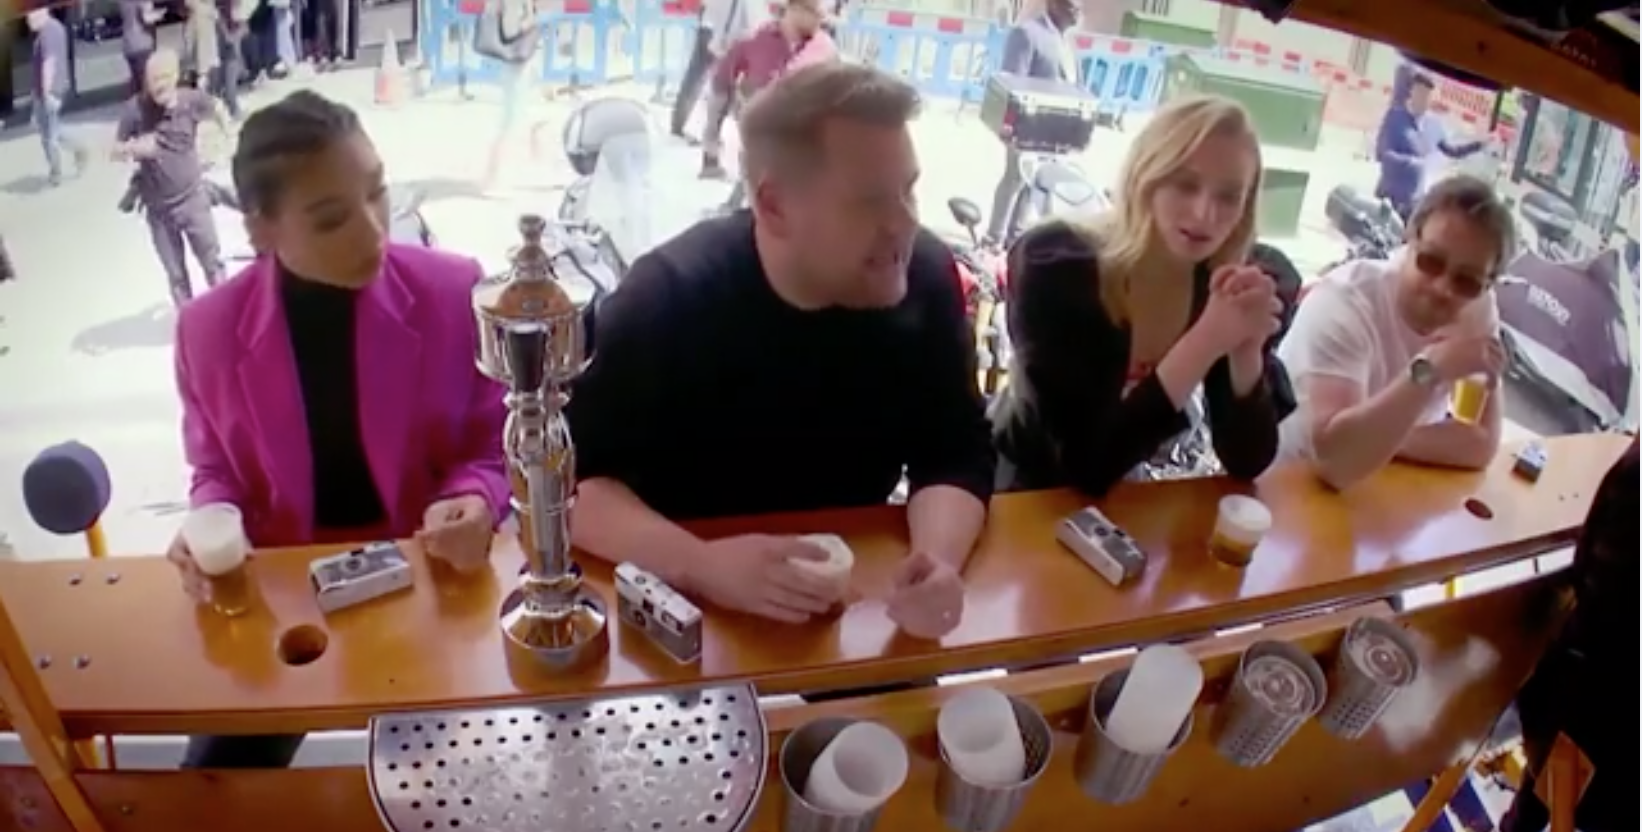 Wee Toast Tours in London rides with James Corden